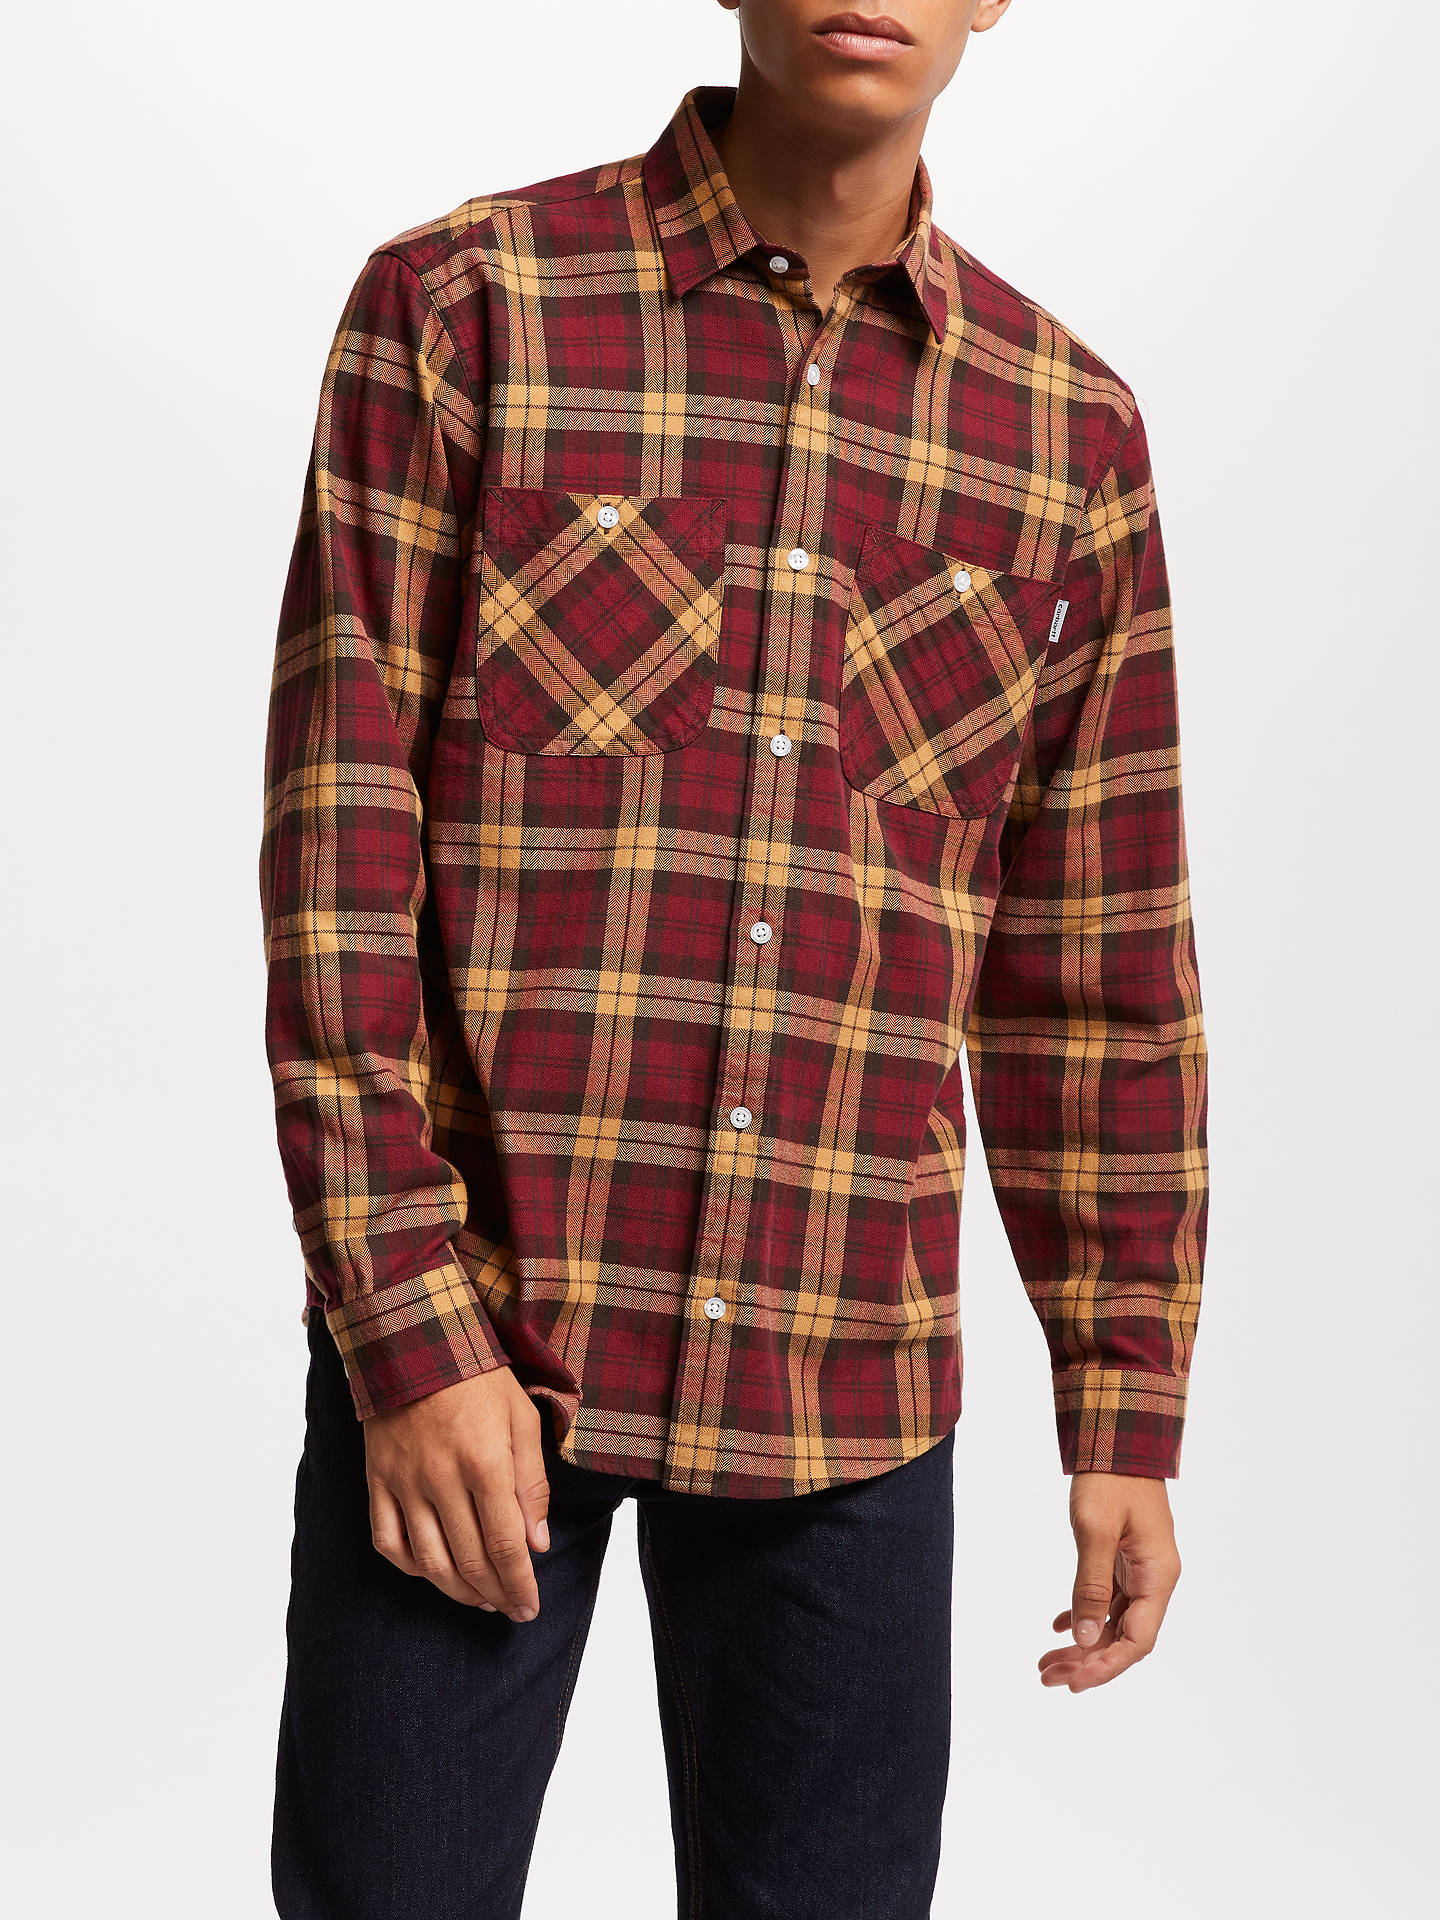 BuyCarhartt WIP Sloman Long Sleeve Check Shirt, Sloman/Mulberry/Fawn, M Online at johnlewis.com